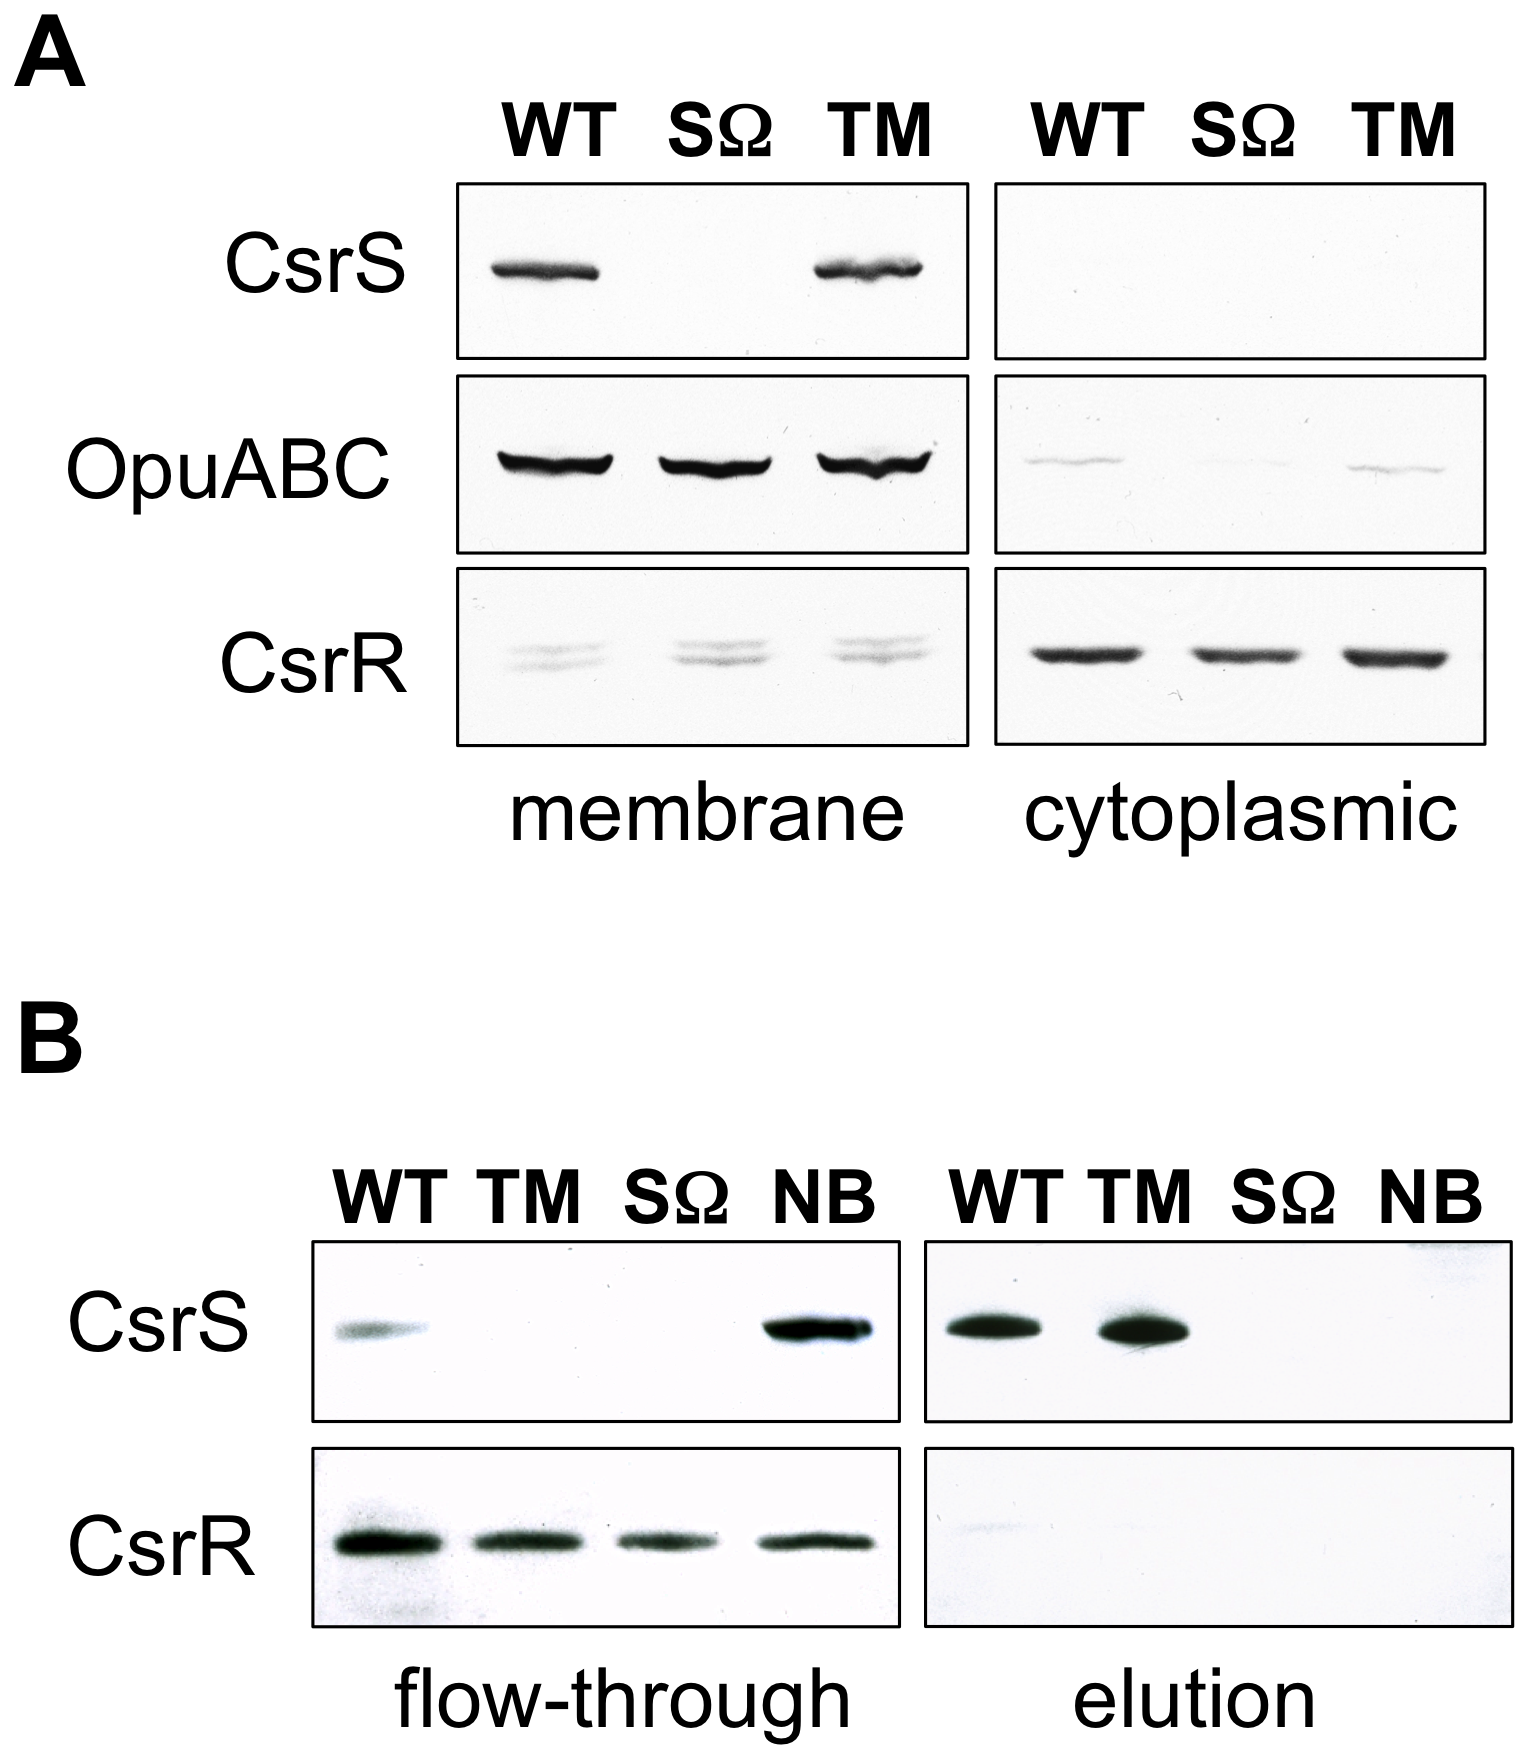 CsrS is associated with the cell membrane and contains a surface-exposed domain.